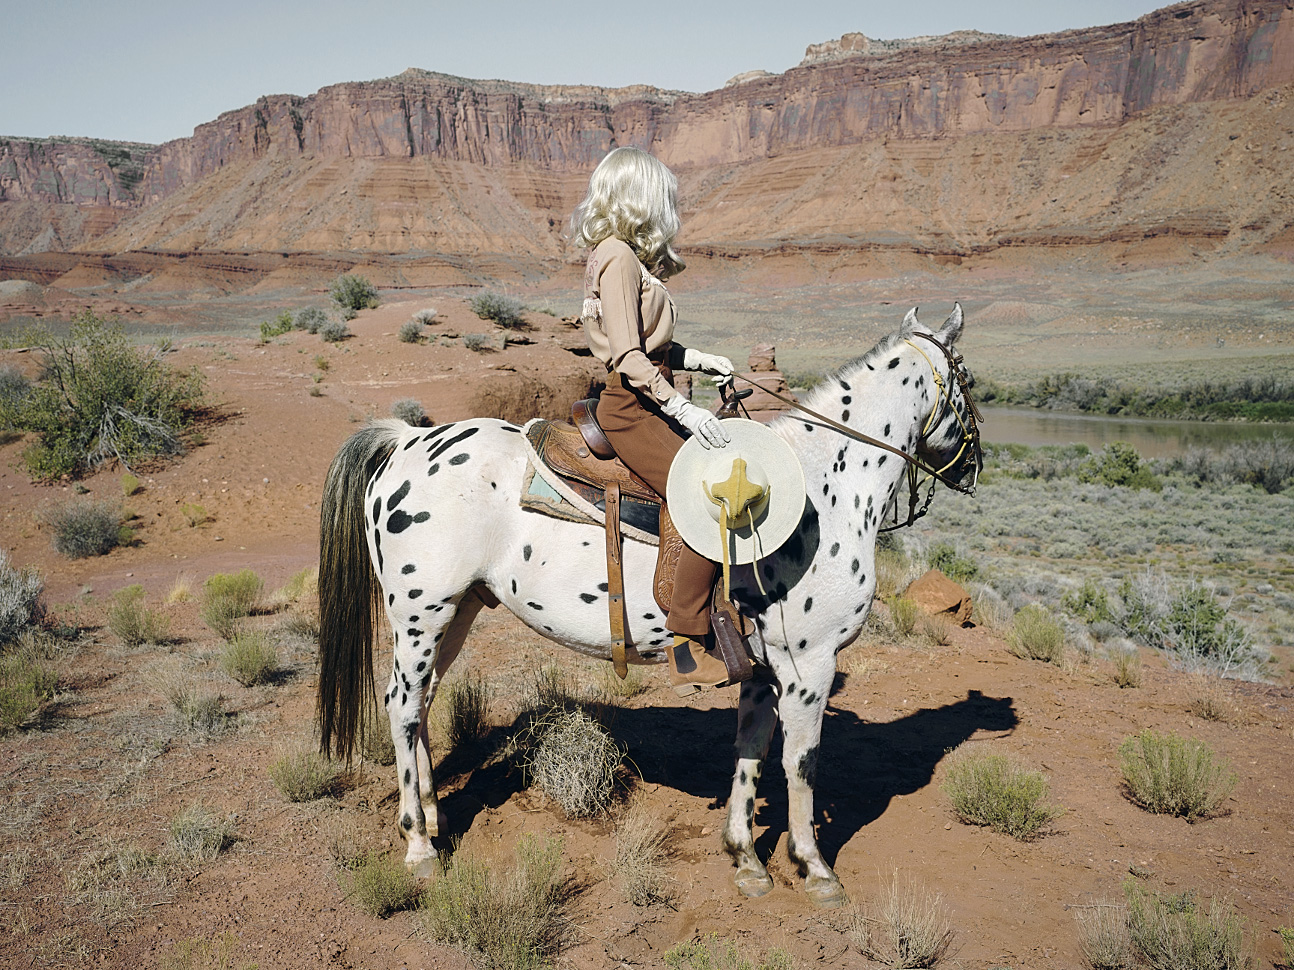 The Imaginary Cowboy © Anja Niemi -The Little Black Gallery